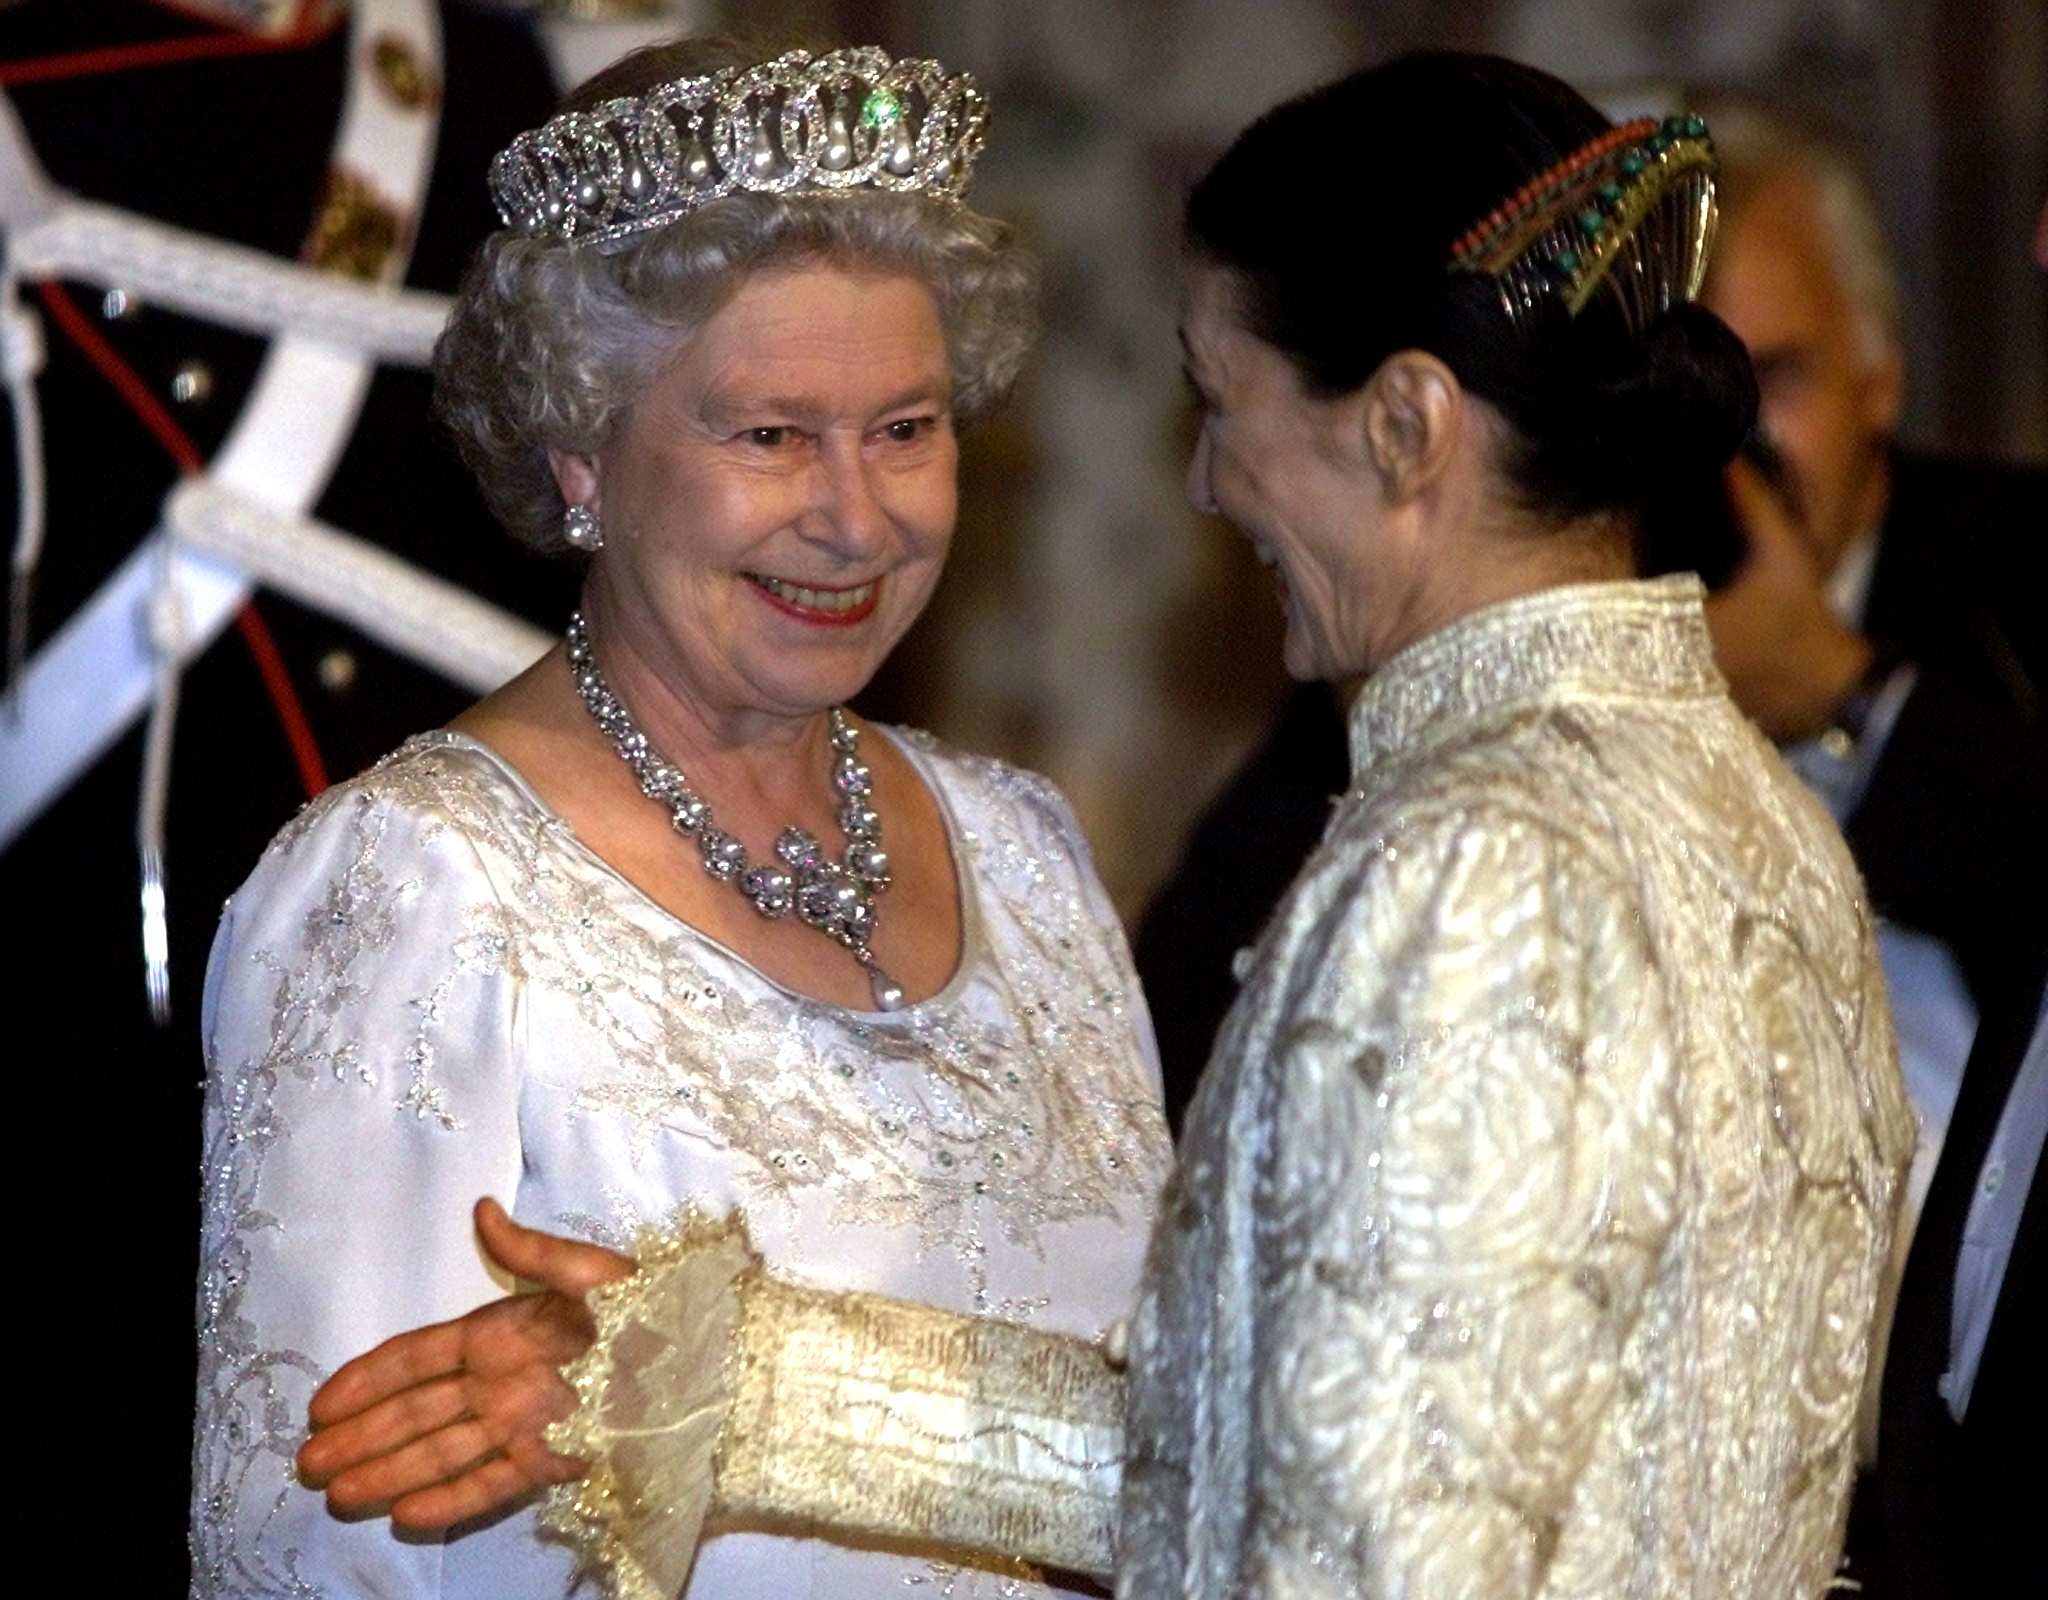 Britain's Queen Elizabeth II (L) smiles to dancer Carla Fracci as she introduces a guest at Quirinale presidential palace in central Rome before the state banquet with [Italian President Carlo Azaglio Ciampi] October 16, 2000. /File Photo